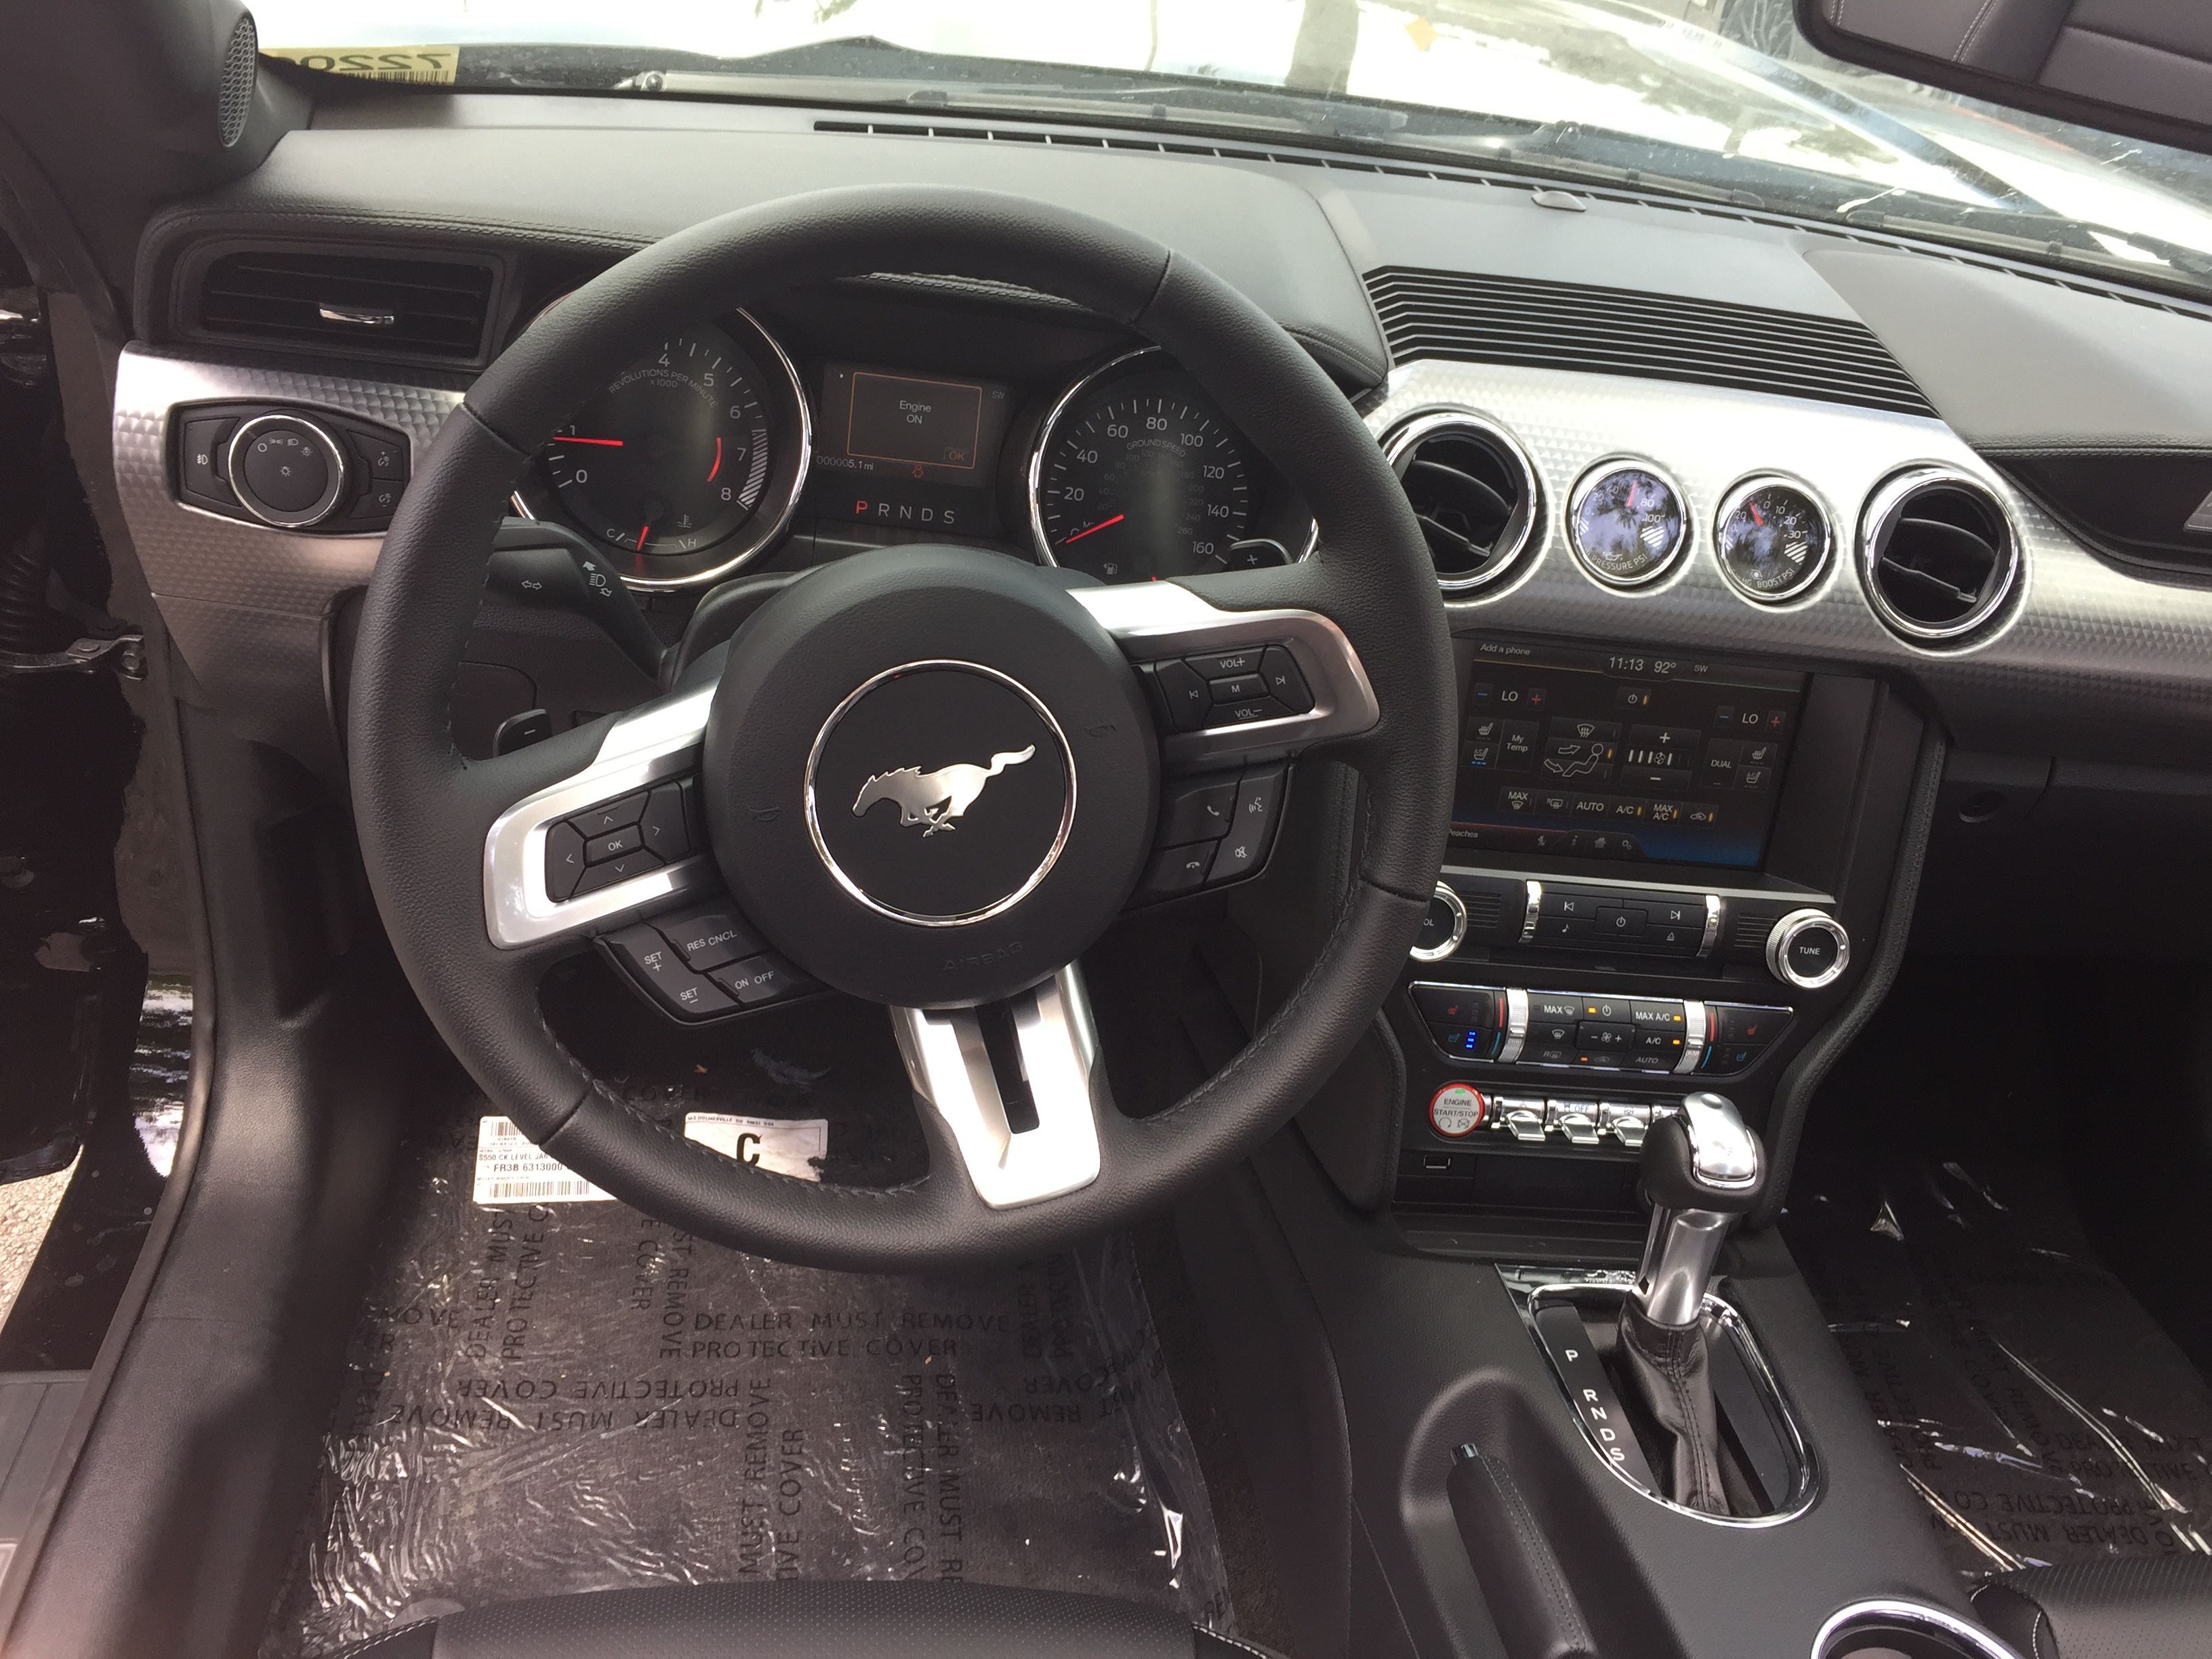 Ford Mustang Ecoboost Interior Ford Mustang Ecoboost Mustang